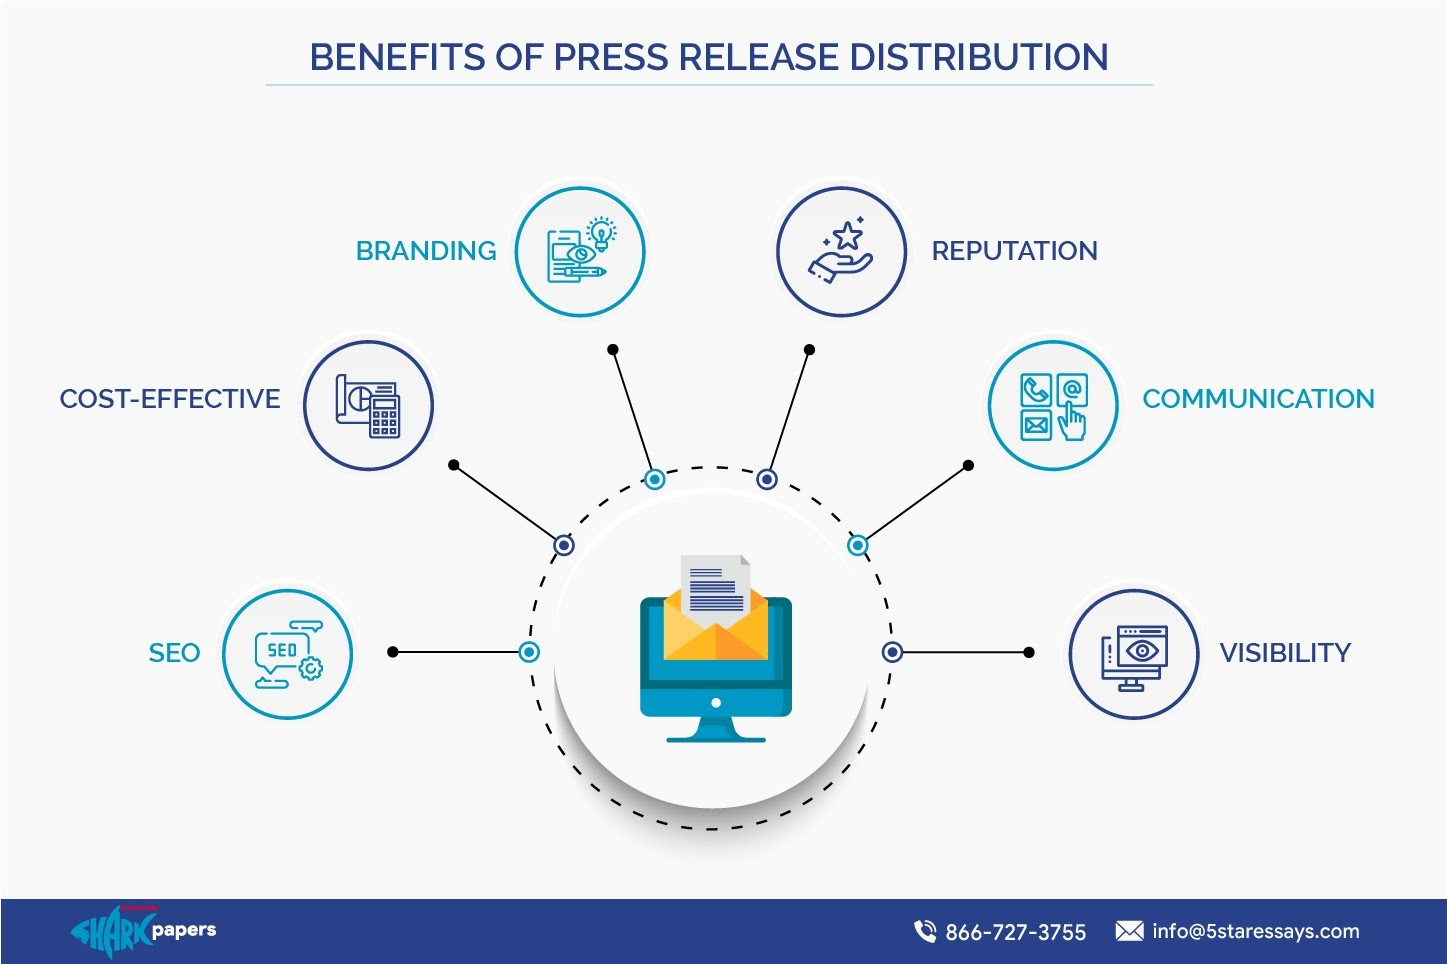 Benefits of Press Release Distribution